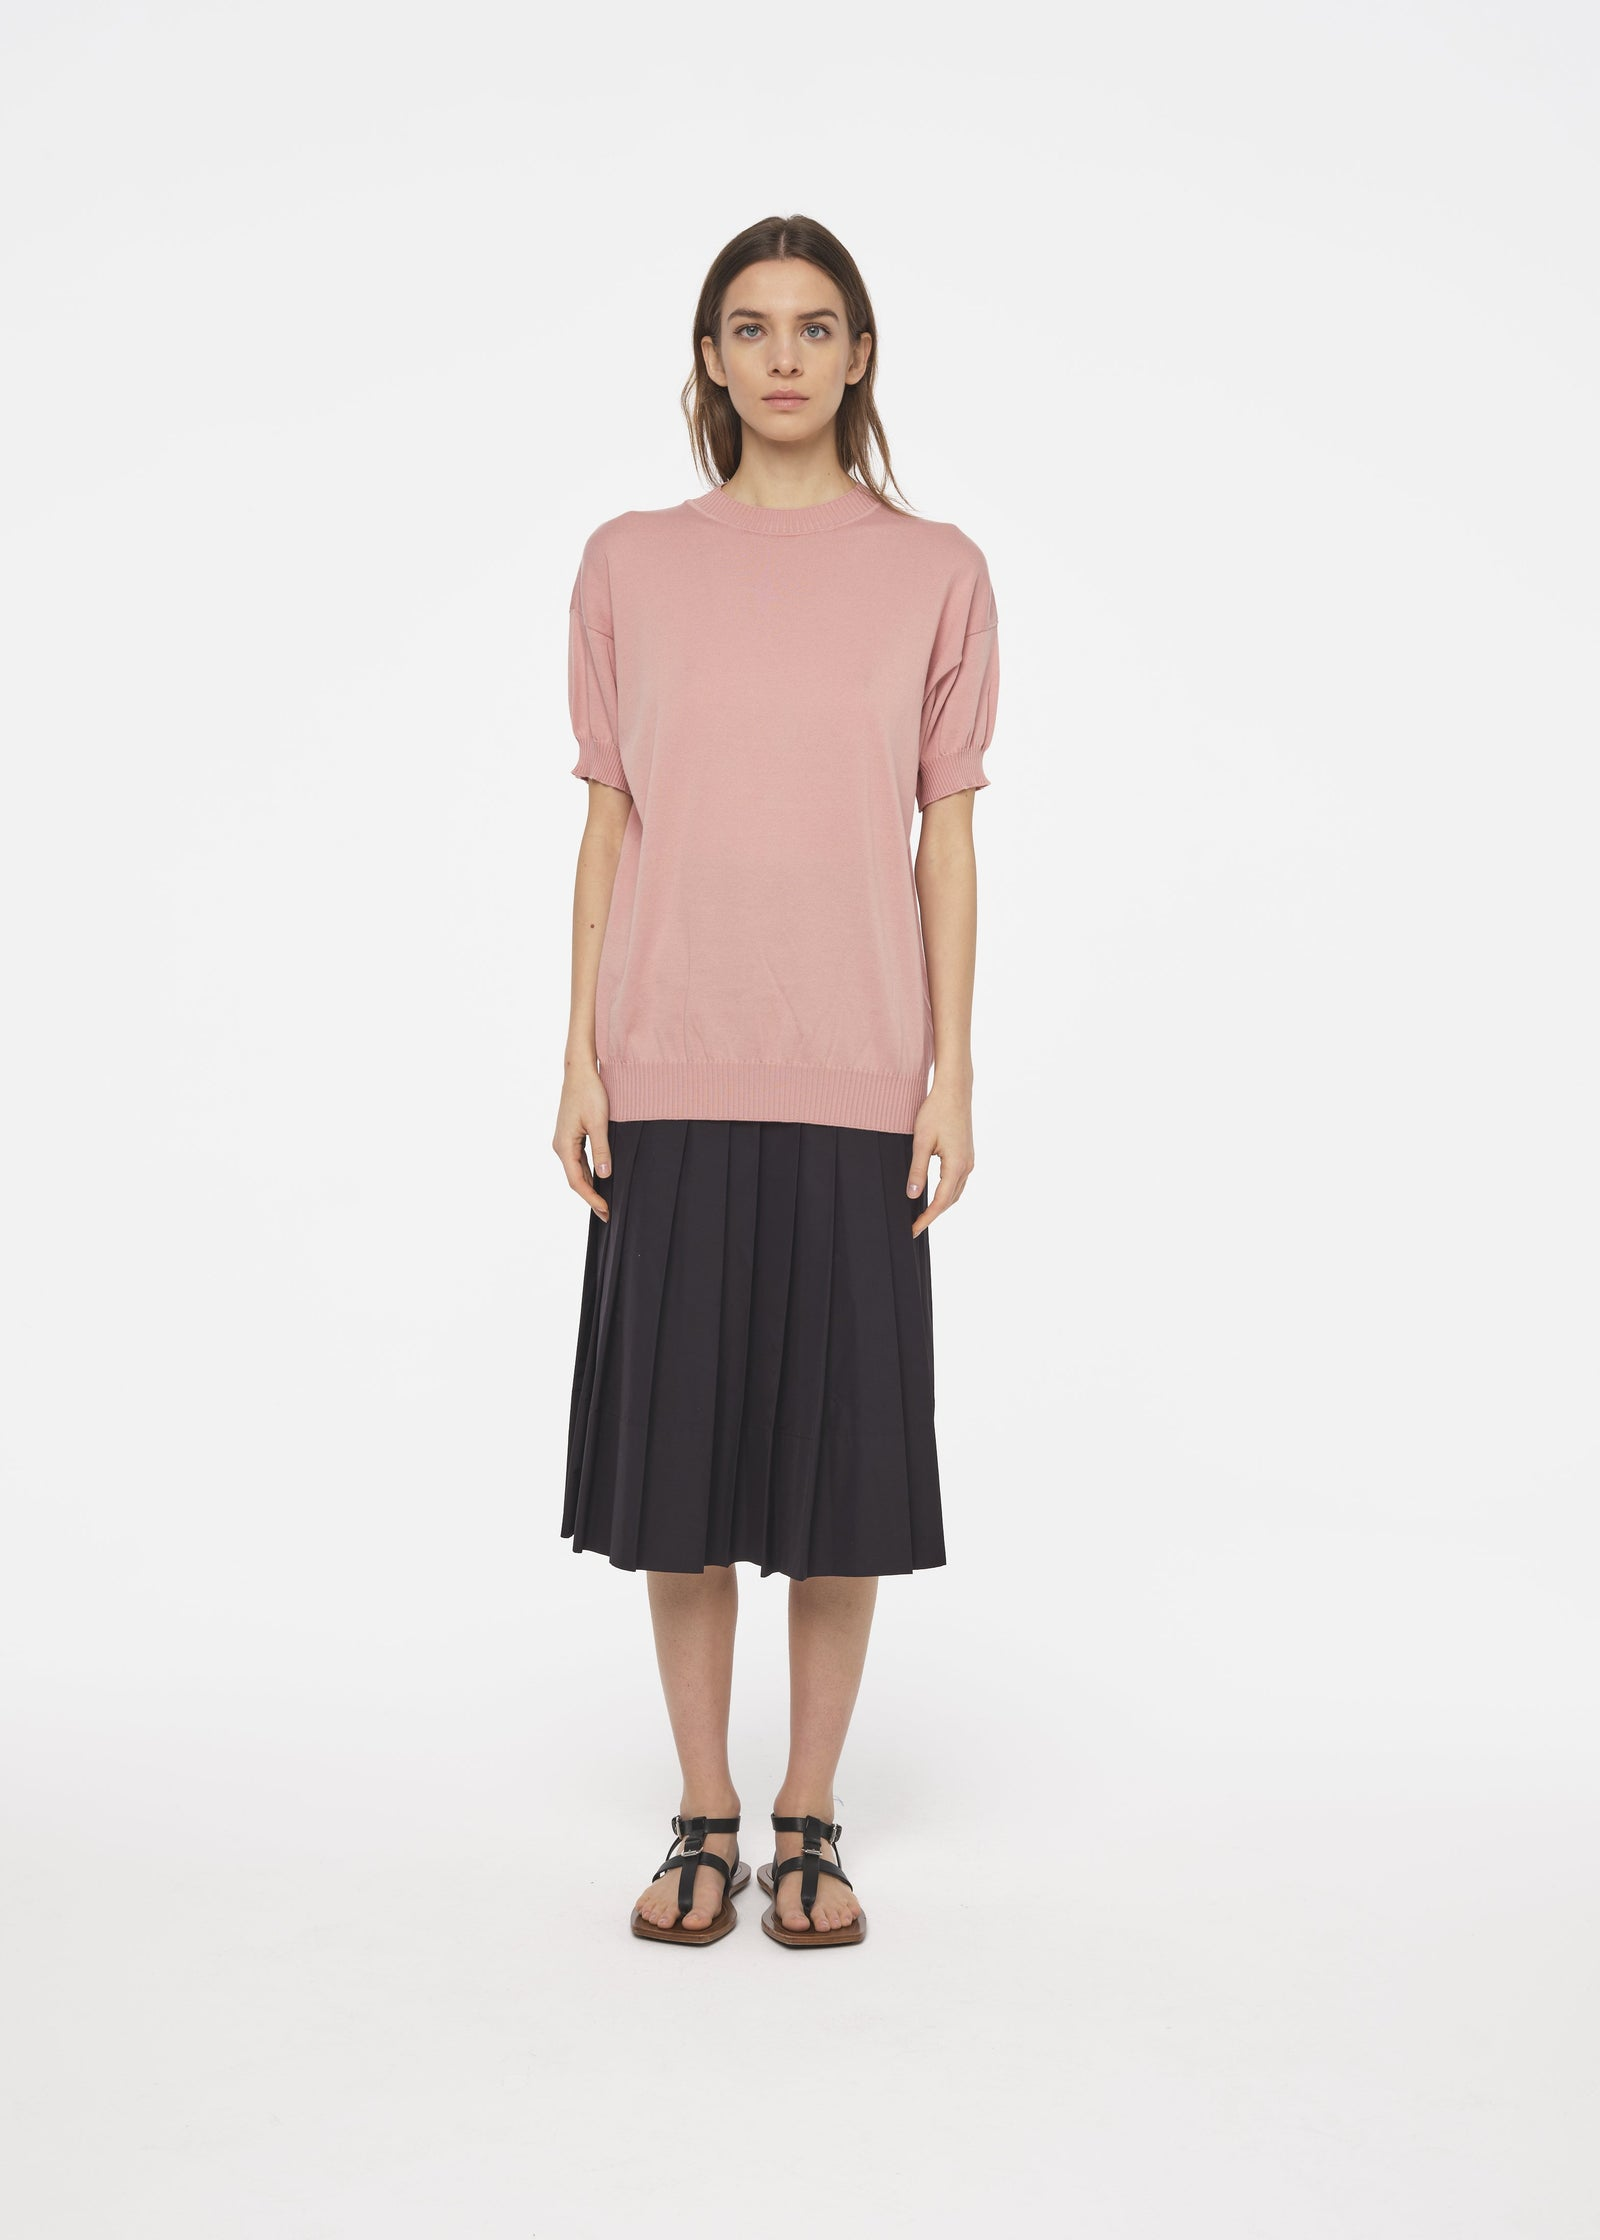 SHORT SLEEVE PINK SWEATER